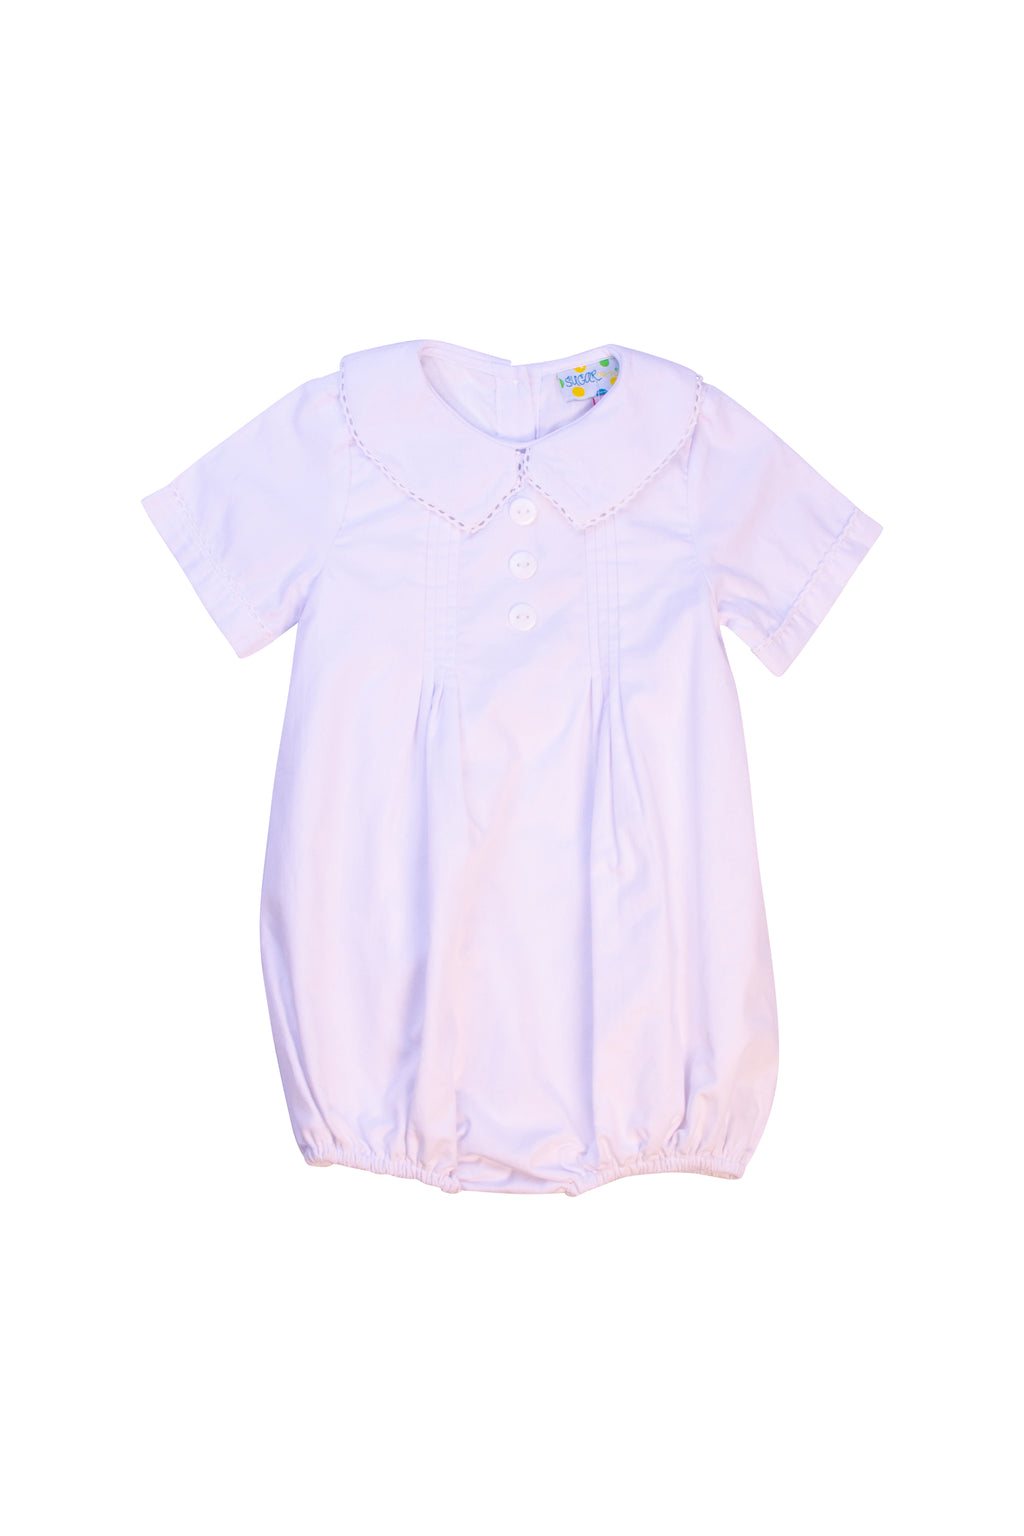 Boys Pleated White Collared Bubble with Buttons